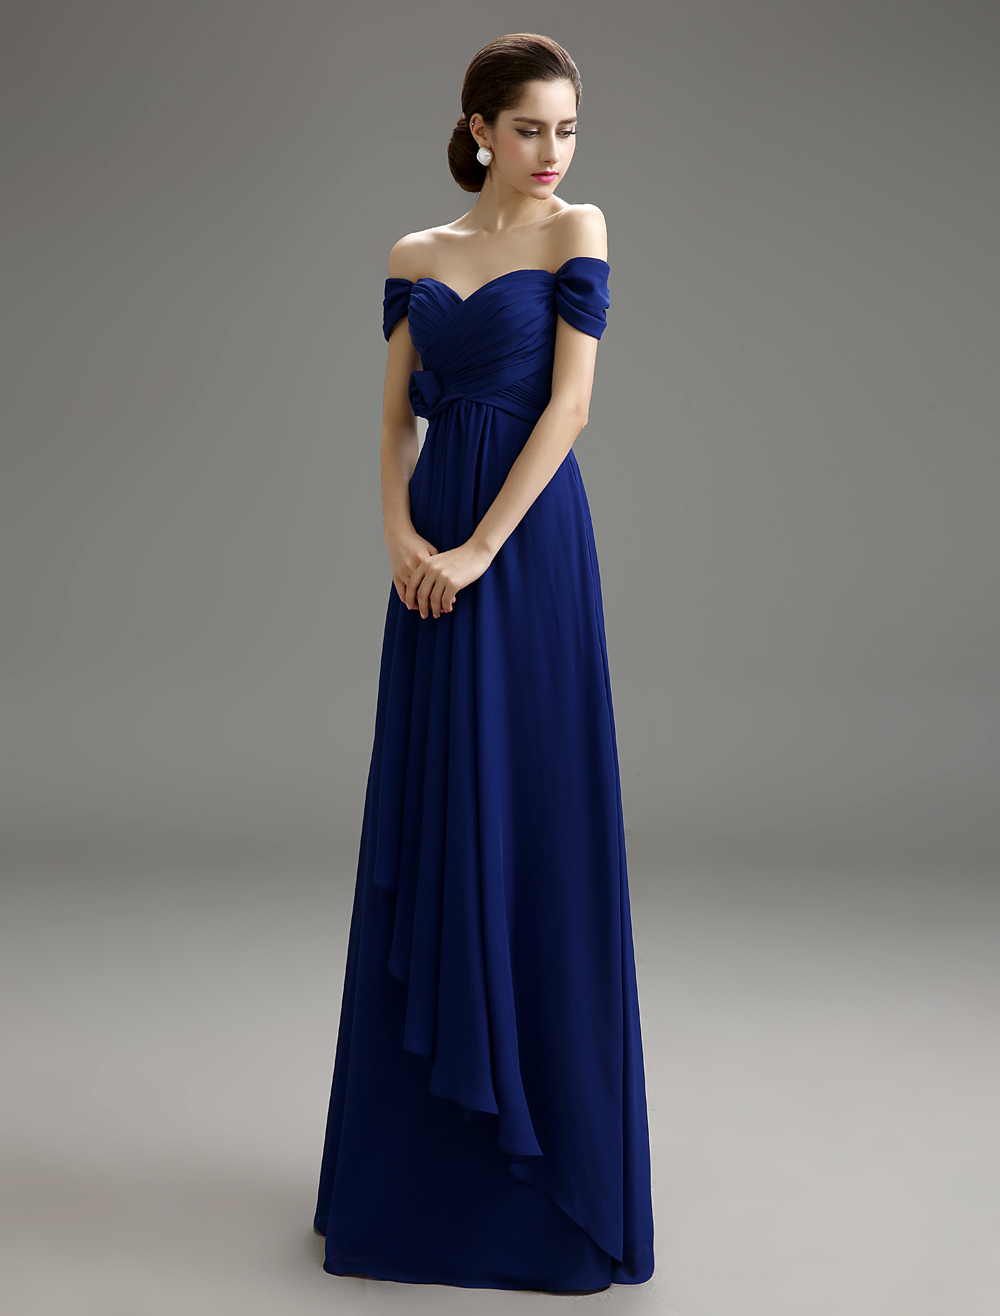 cf7e2922681 Sweetheart Chiffon Detachable Bridesmaid Dress with Off-The-Shoulder Wedding  Guest Dress Milanoo - Milanoo.com